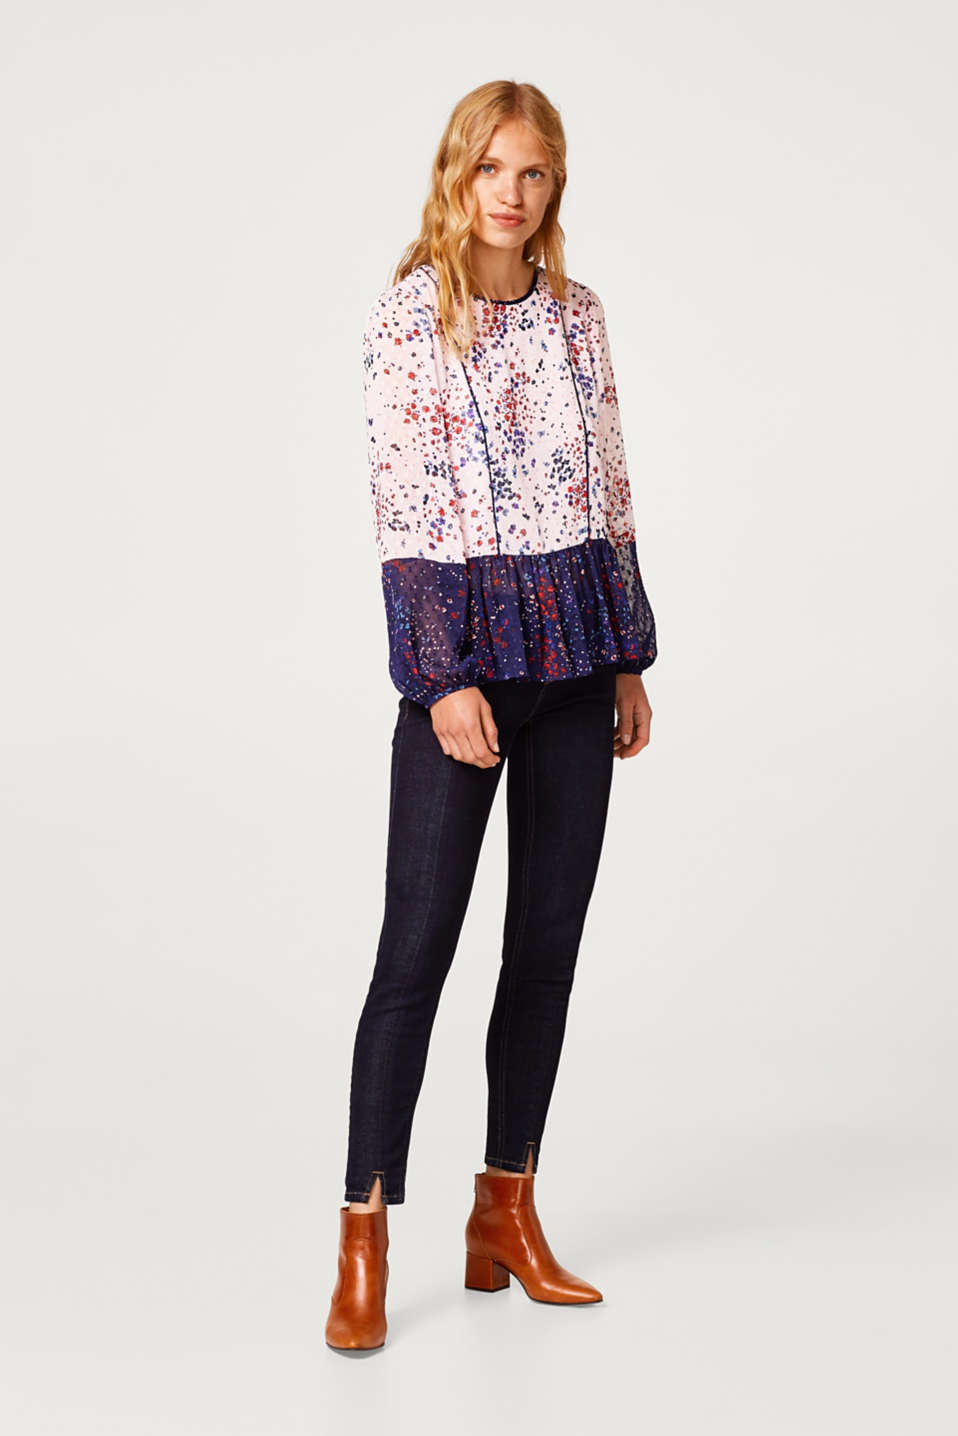 Chiffon tunic blouse with a floral print